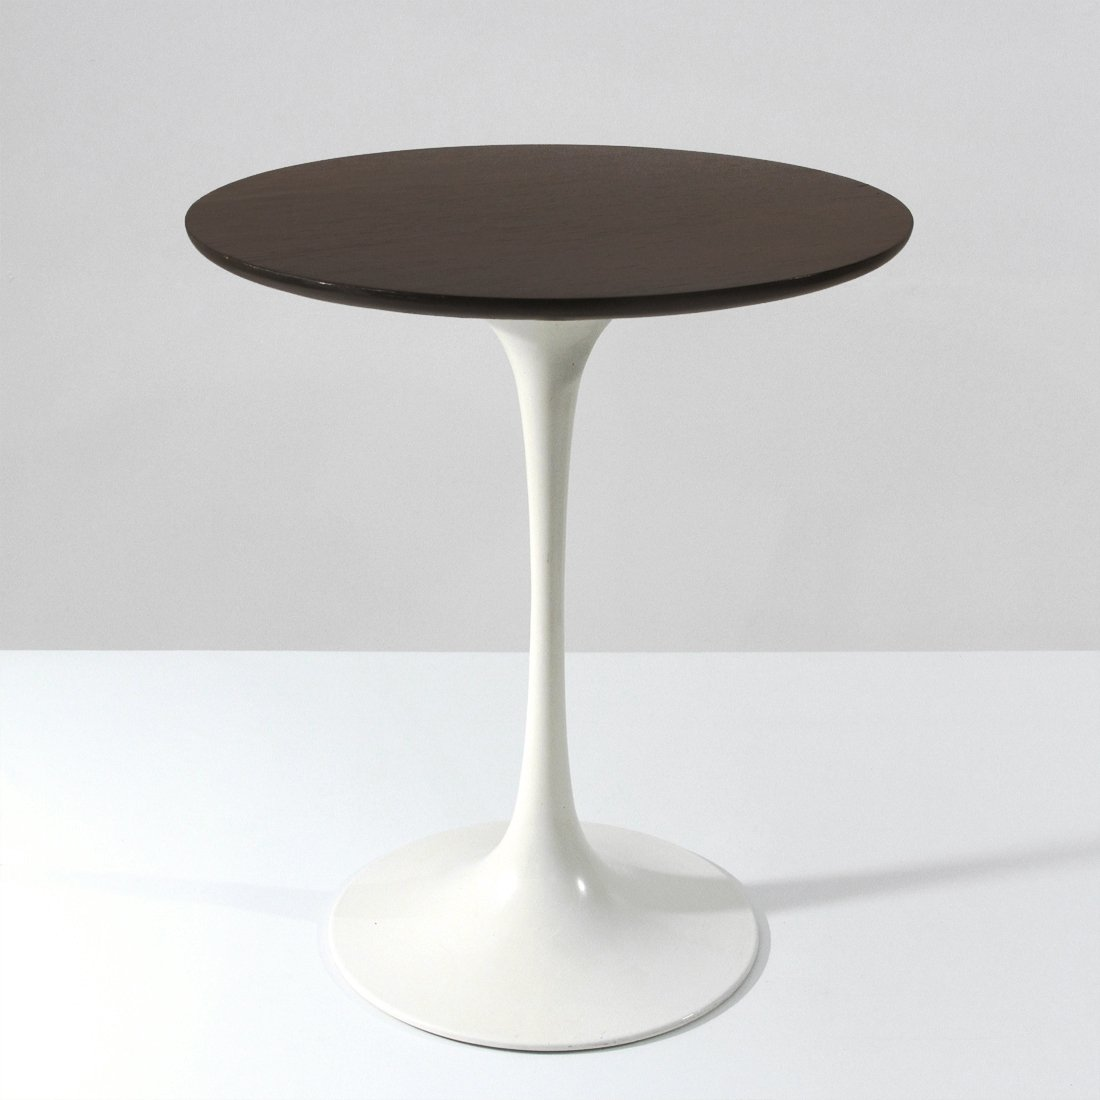 Midcentury Round Wooden Top Tulip Coffee Table By Arkana 1960s